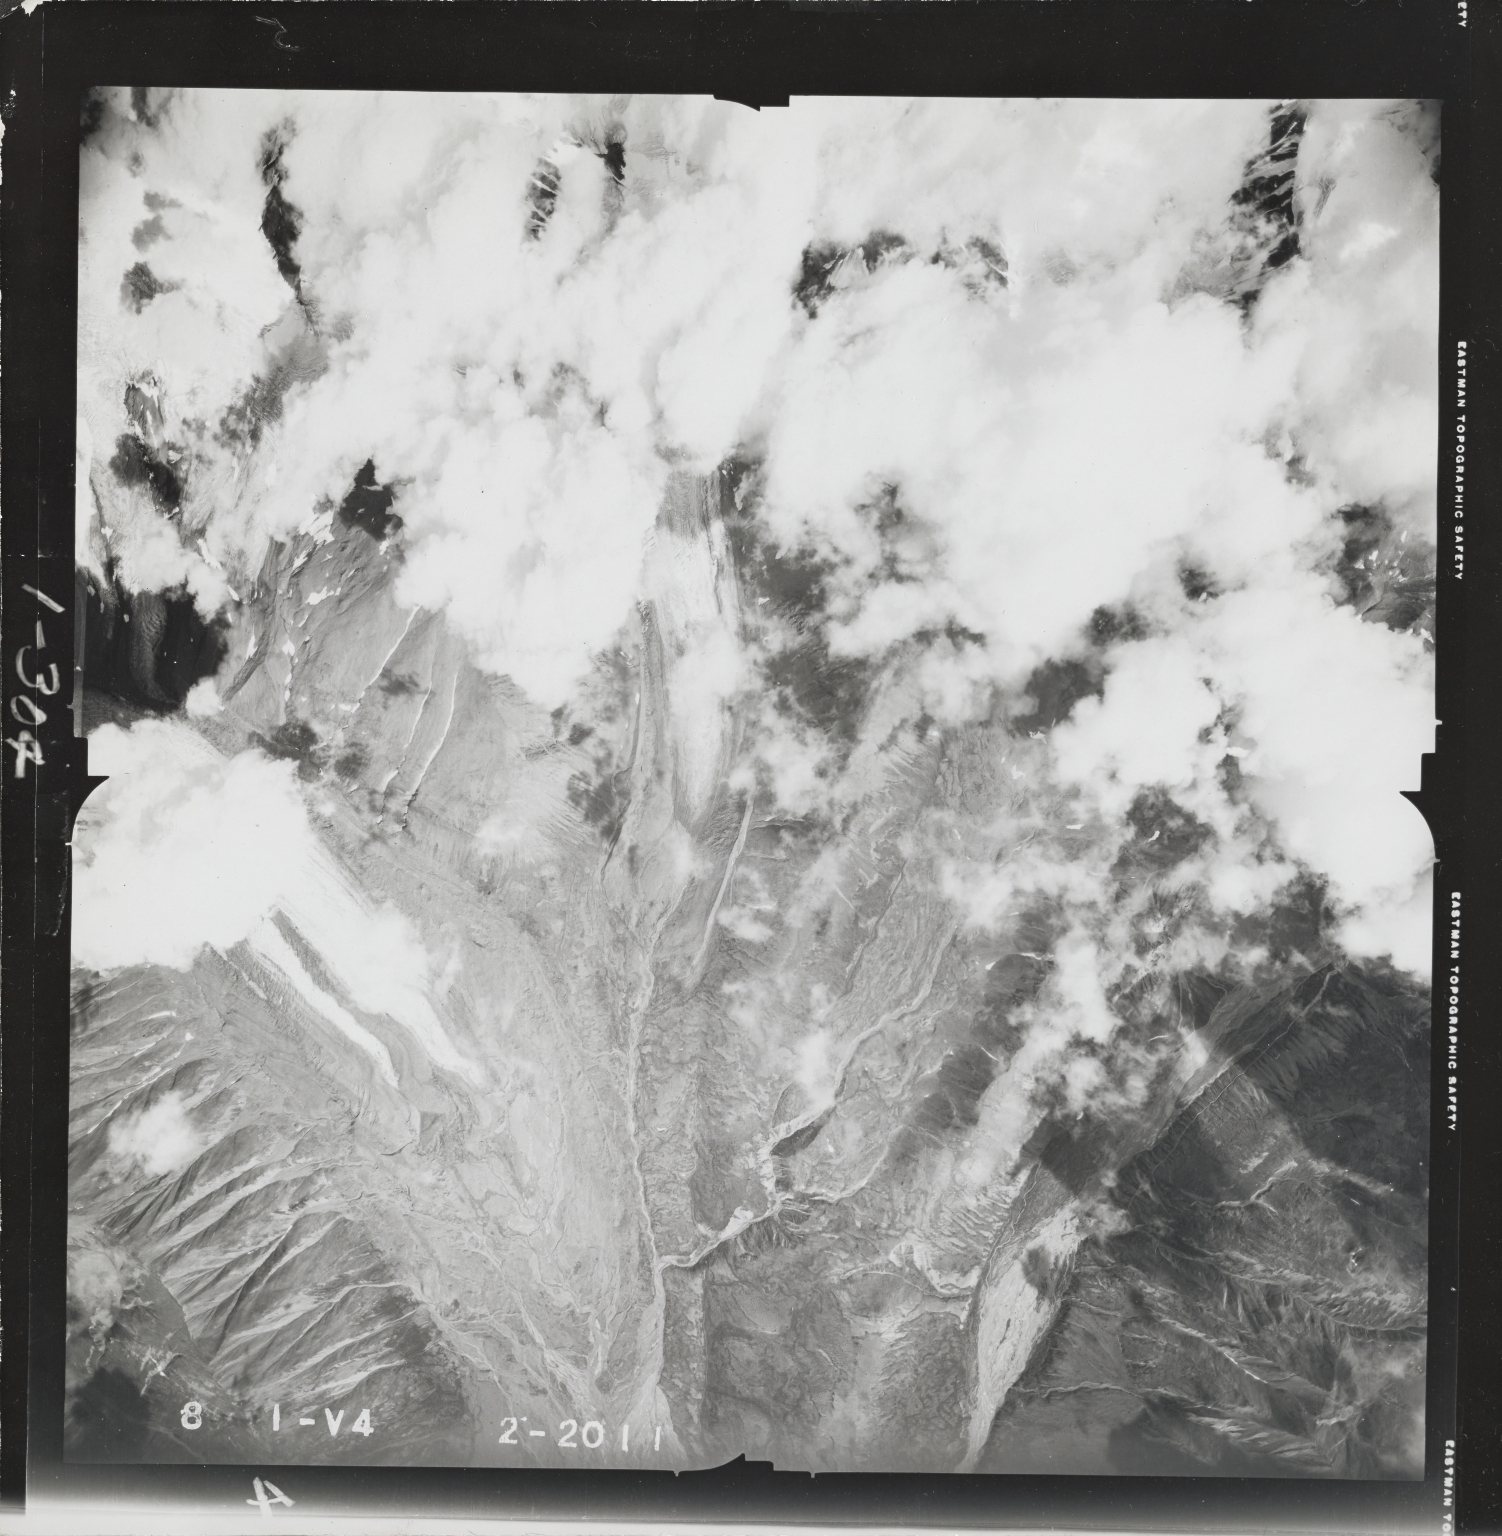 South of Black Rapids Glacier, aerial photograph FL 55 V-4, Alaska